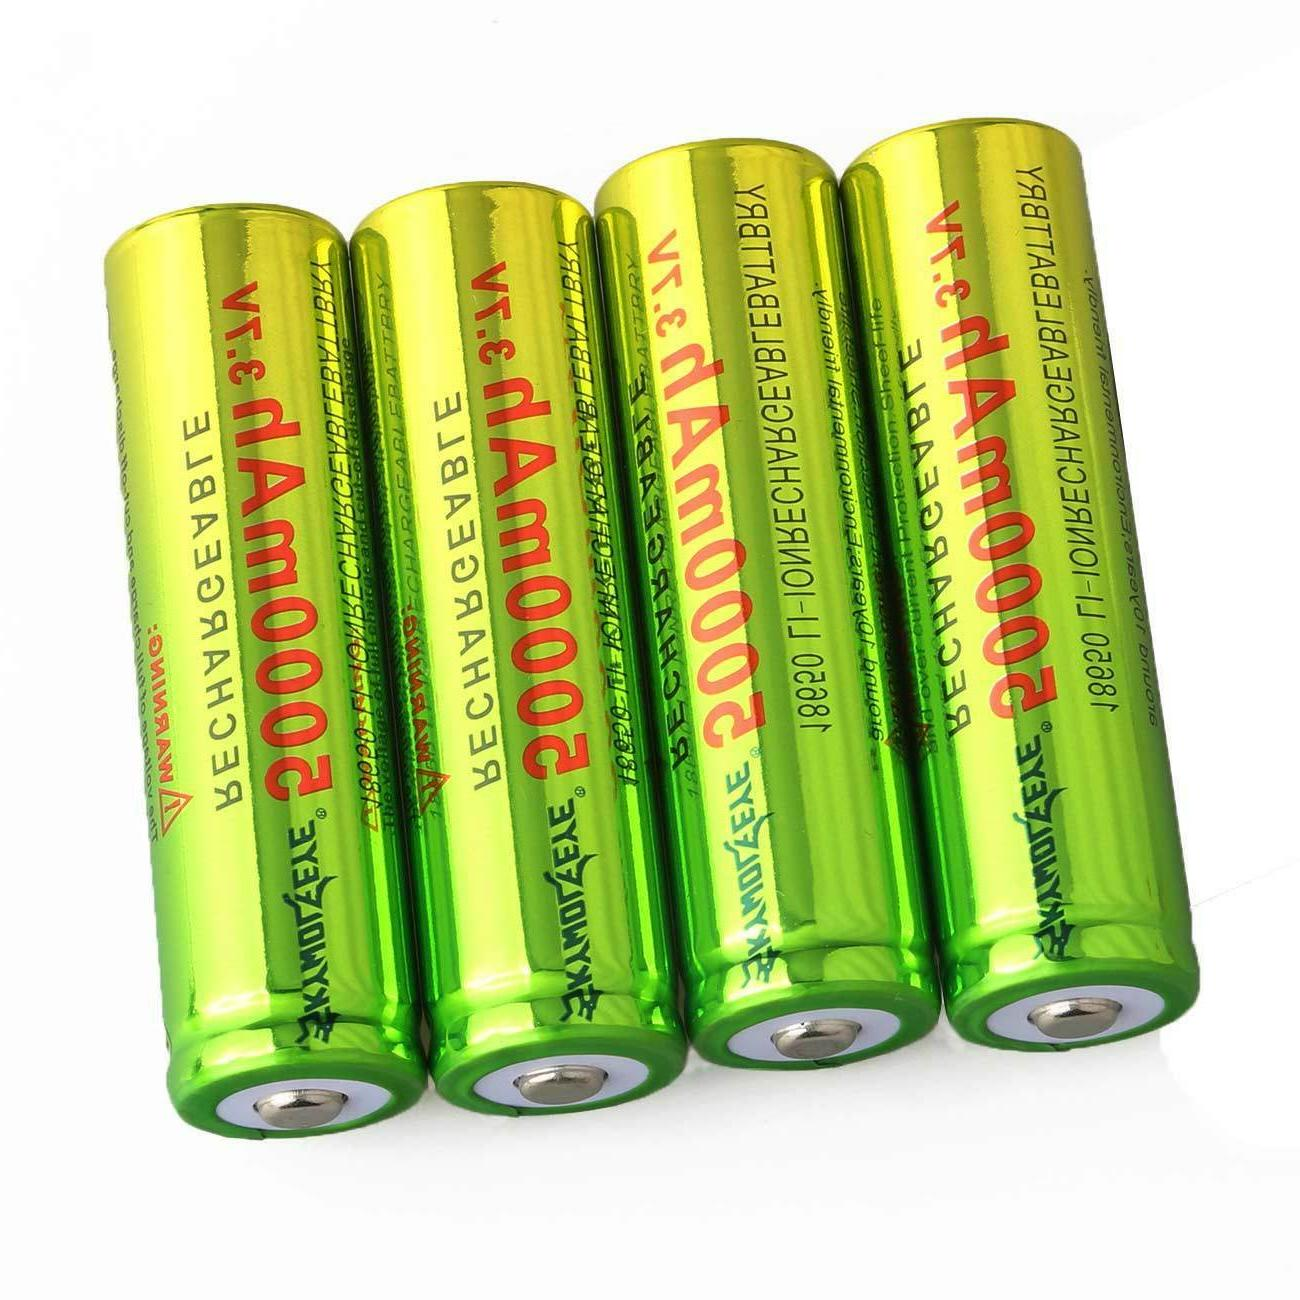 Lot 18650 5000mAh Rechargeable